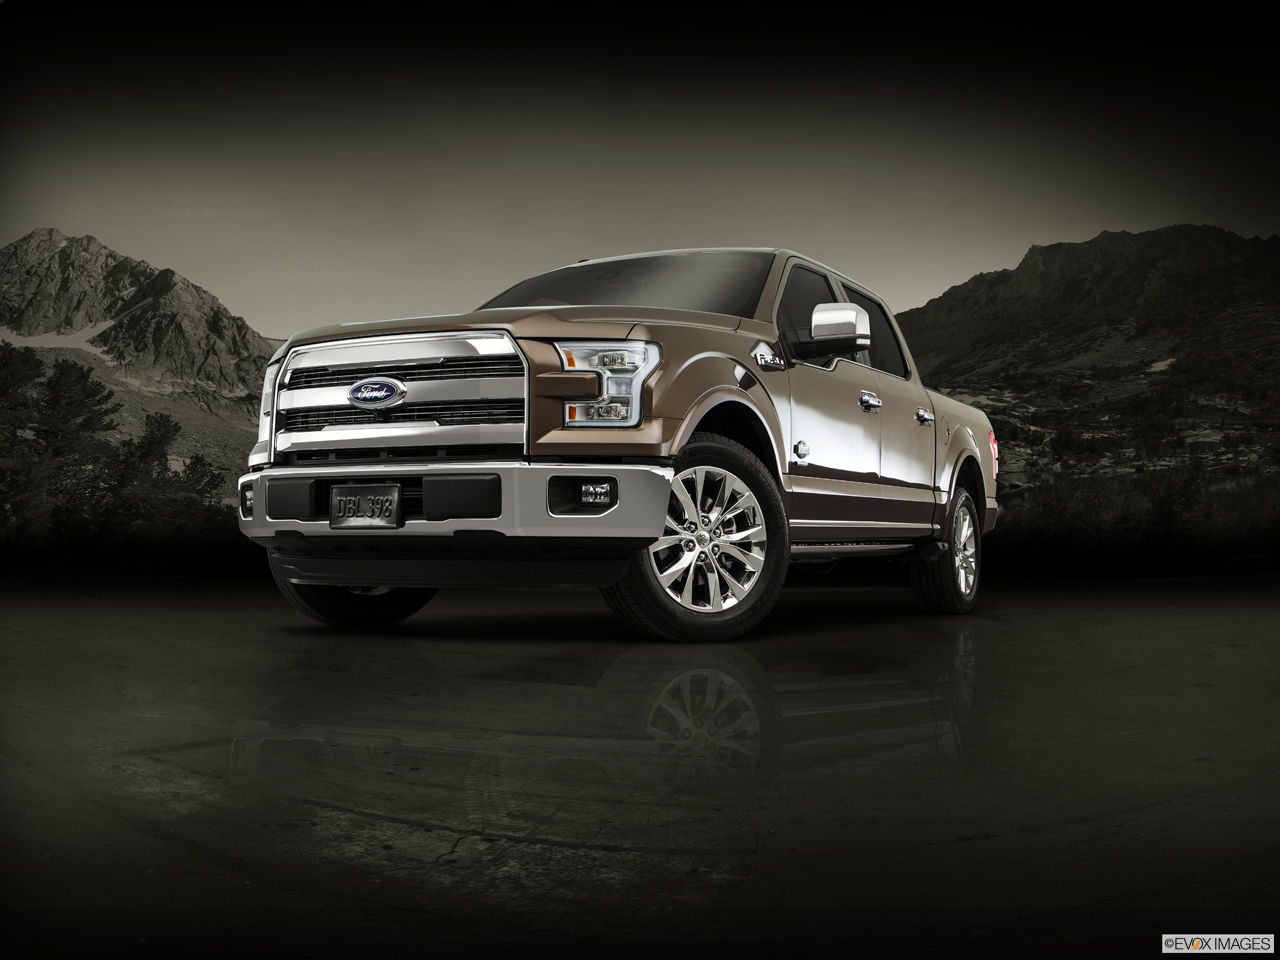 Exterior View Of 2016 Ford F-150 in San Diego